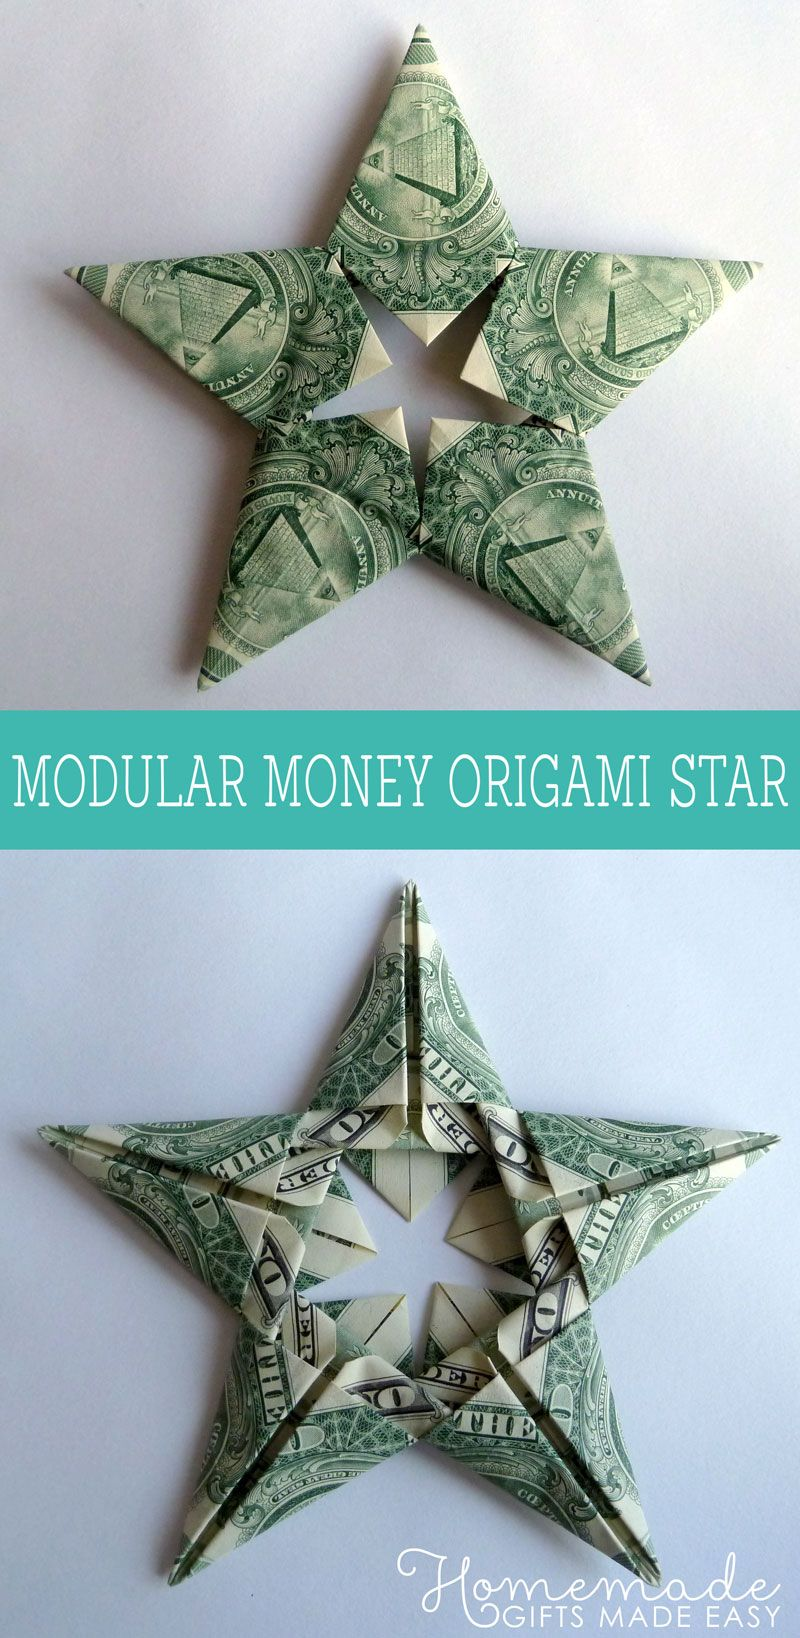 Modular Money Origami Star Step By Step Instructions Folding